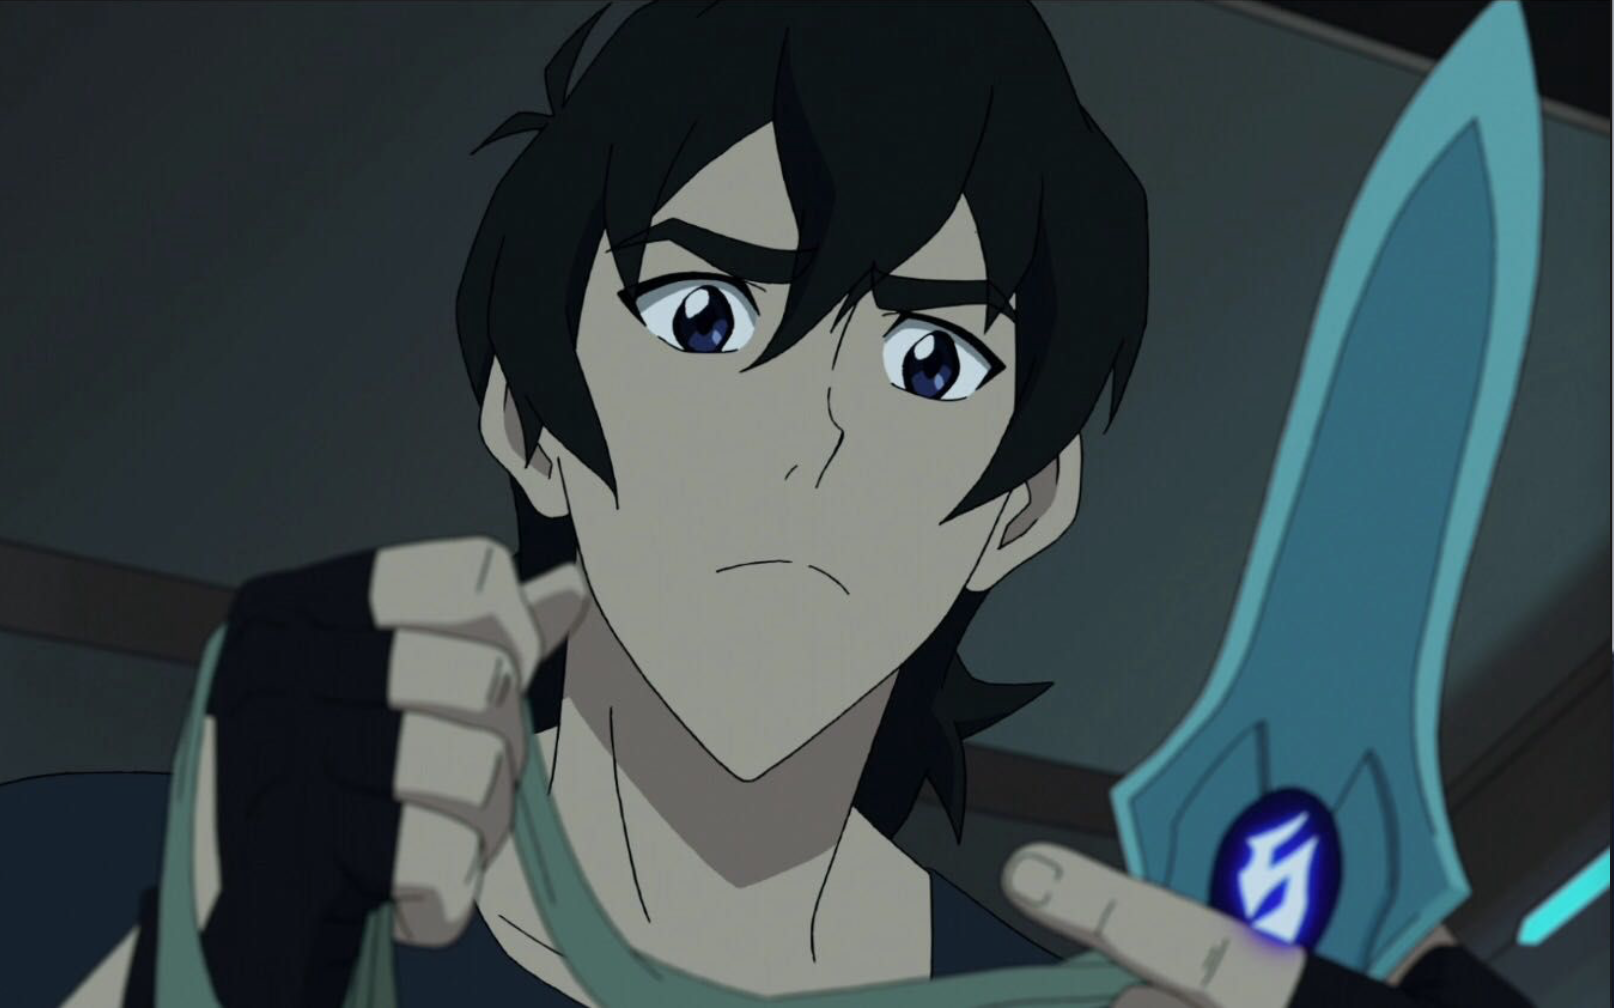 Keith and his dagger knife blade with the Galra crest on it